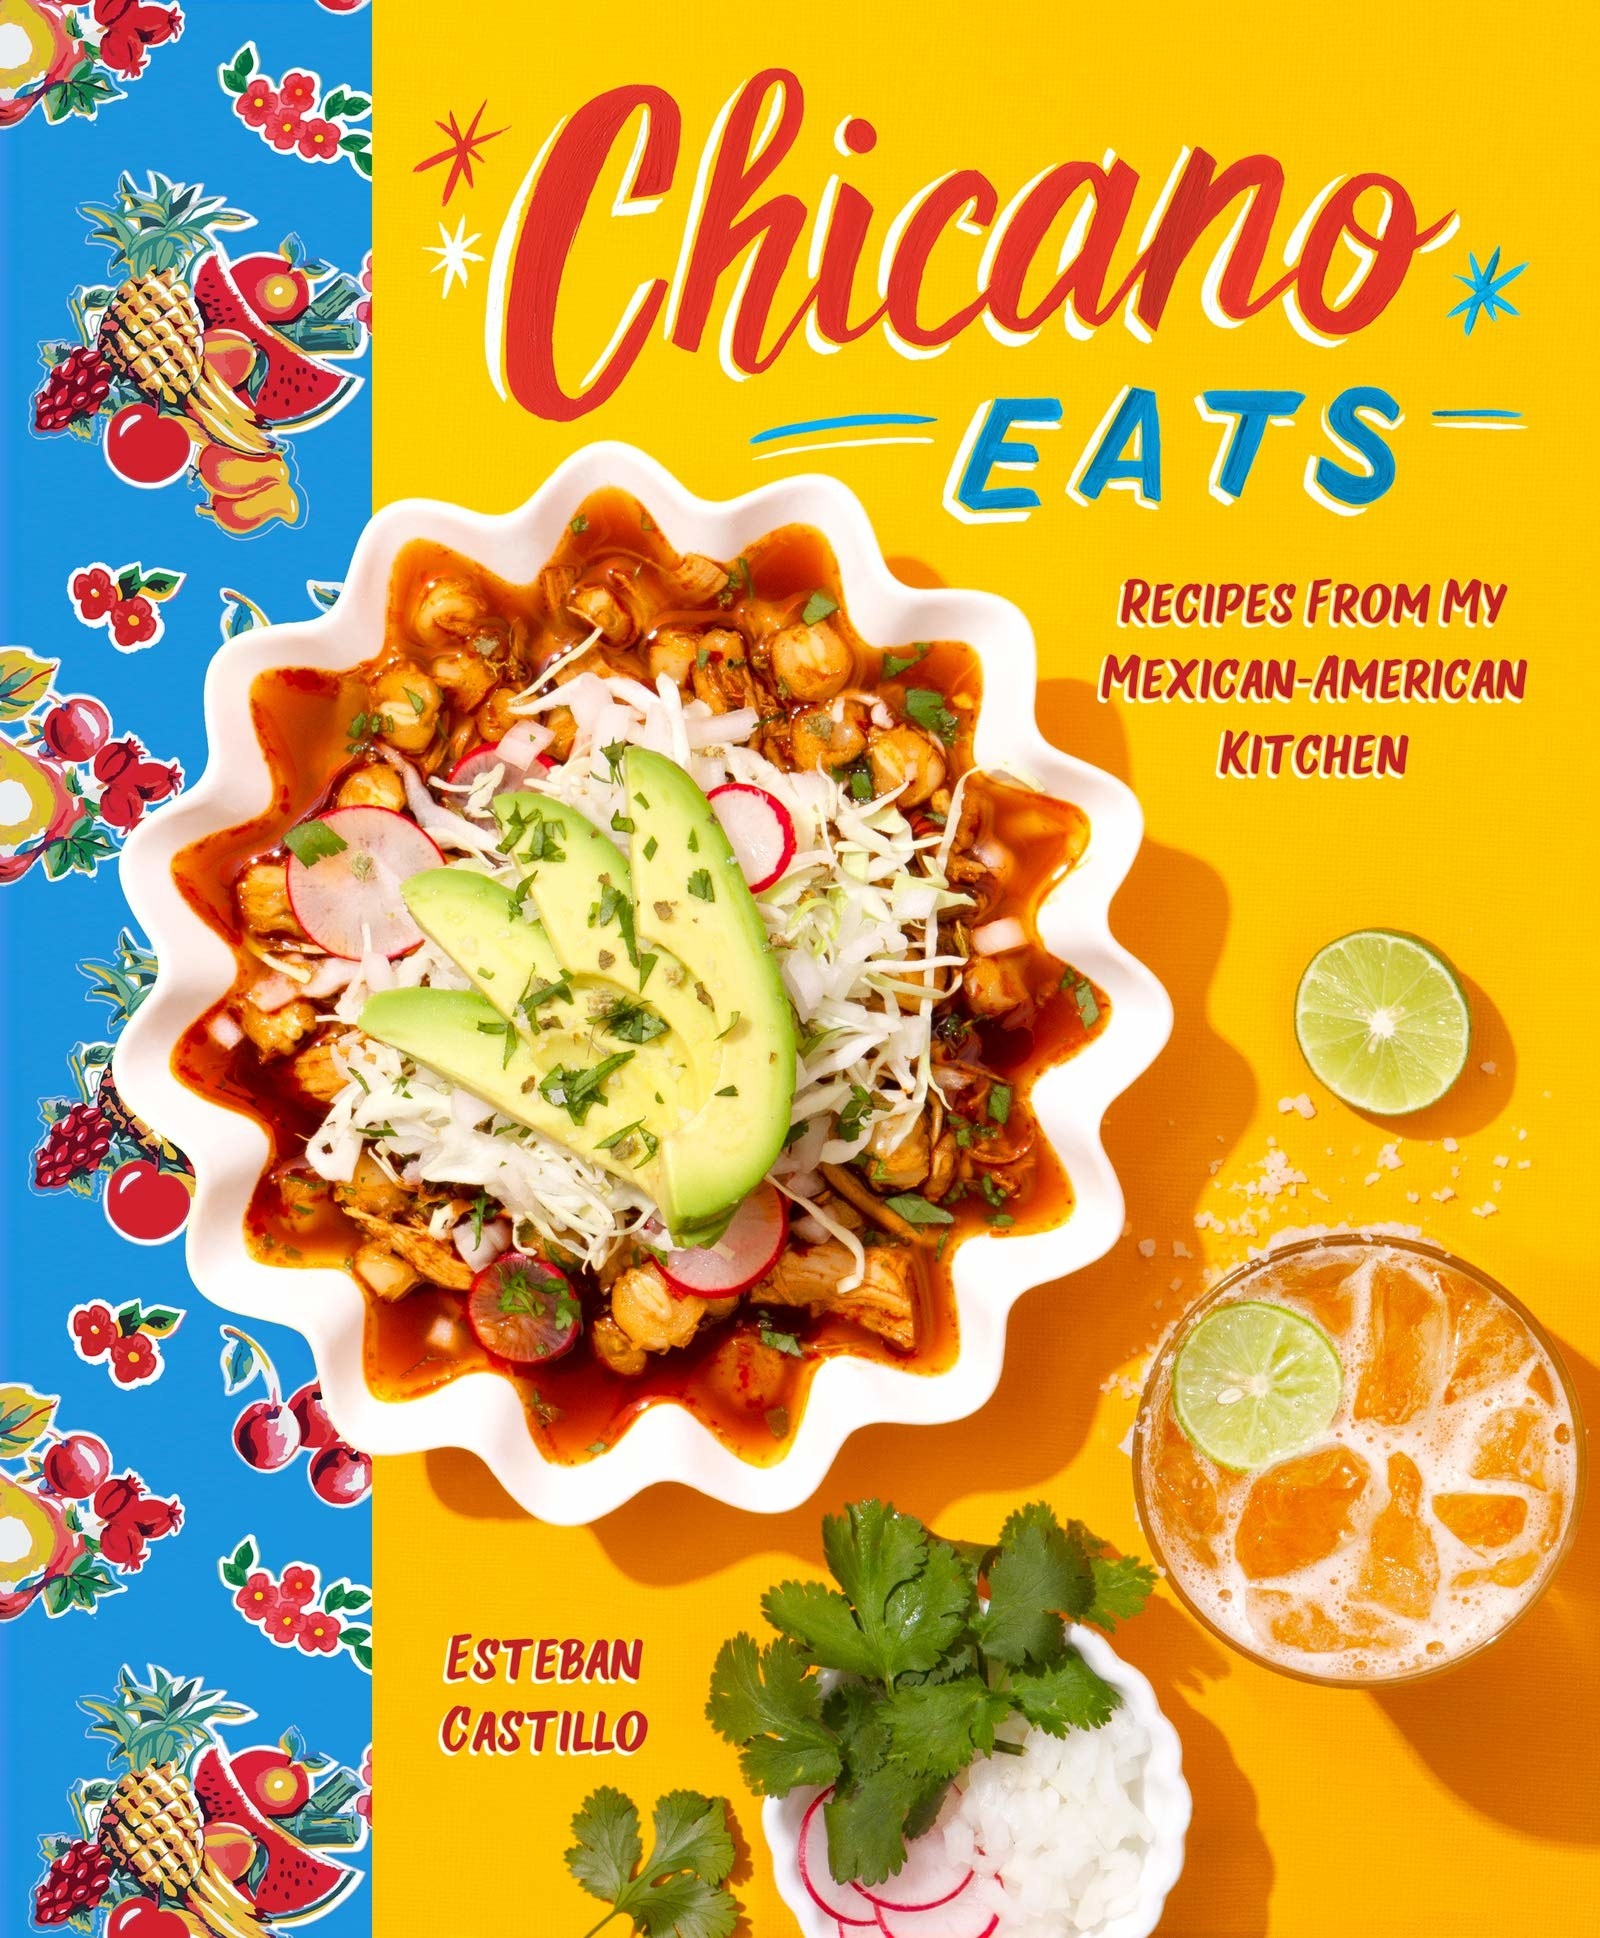 The book cover featuring a bowl of menudo on it